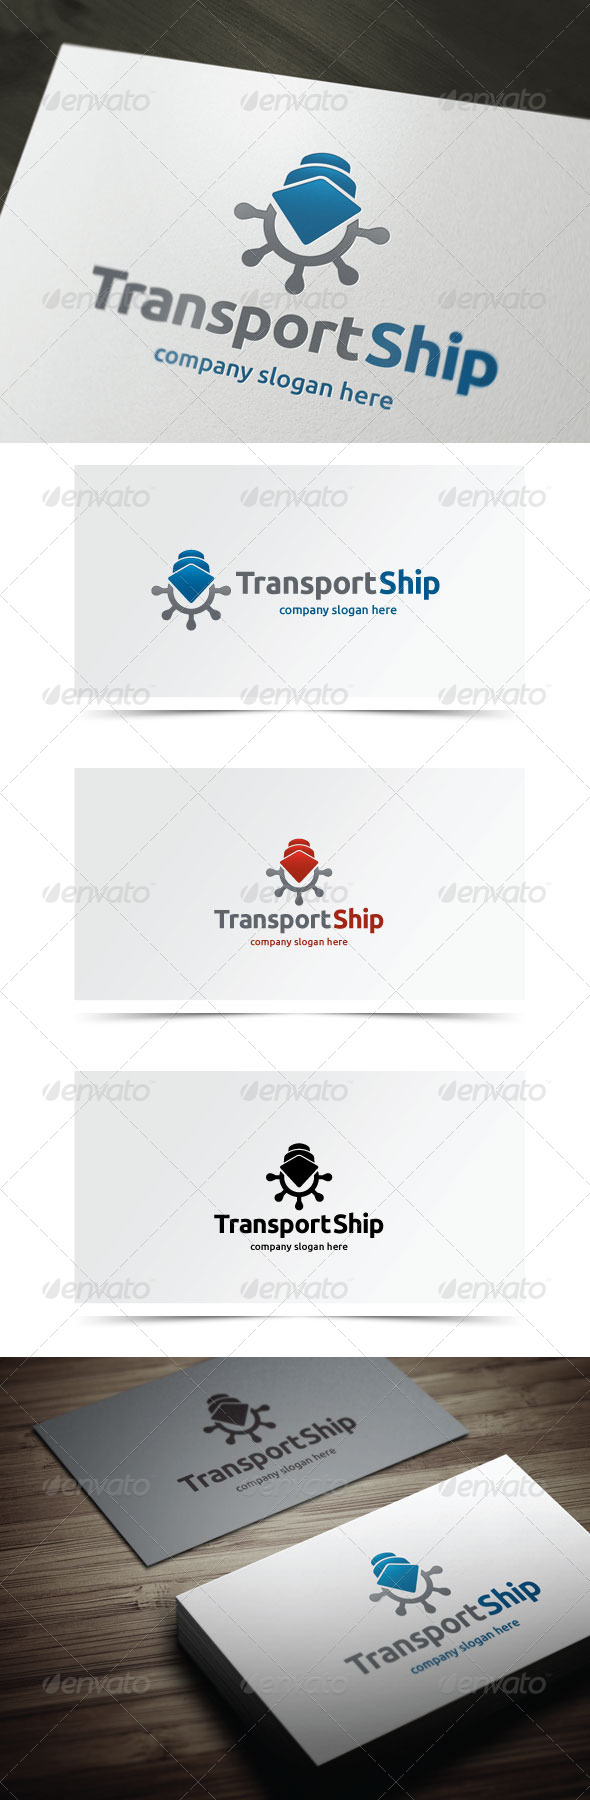 Transport Ship - Objects Logo Templates